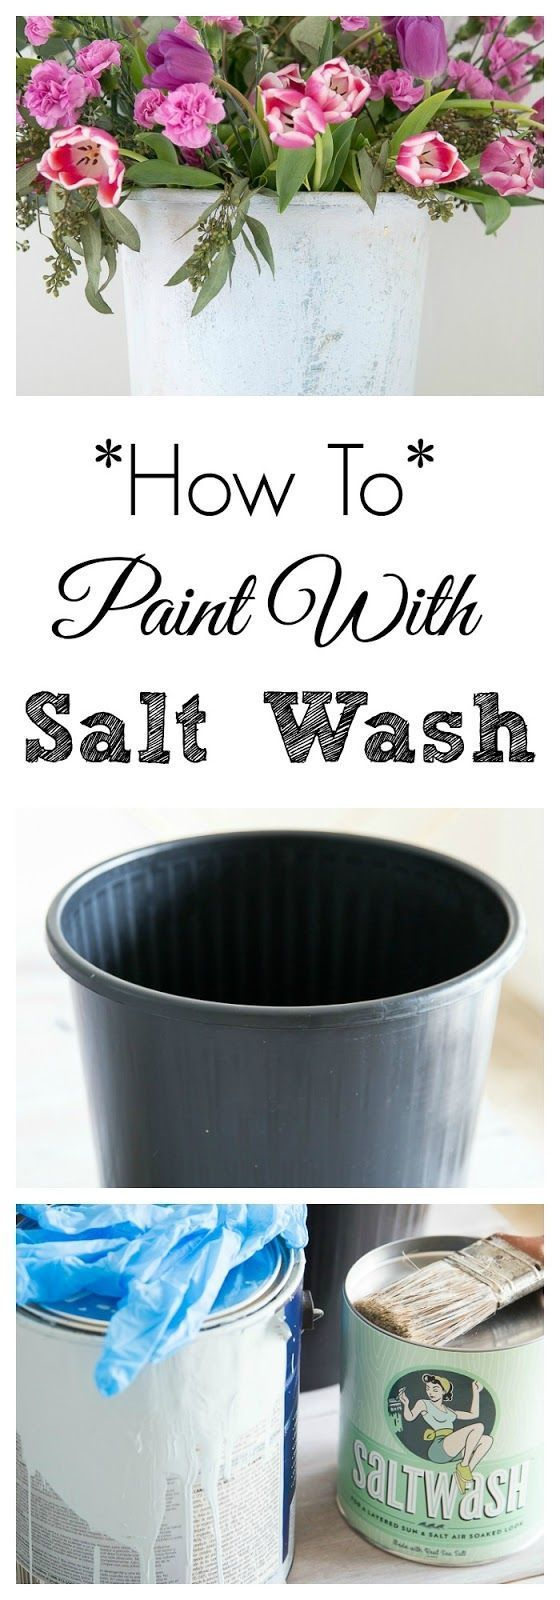 How To Use Saltwash Paint Additive For Upcycling furniture and accessories. DIY painting tips and using antiquing glaze. Trash to treasure for flowers